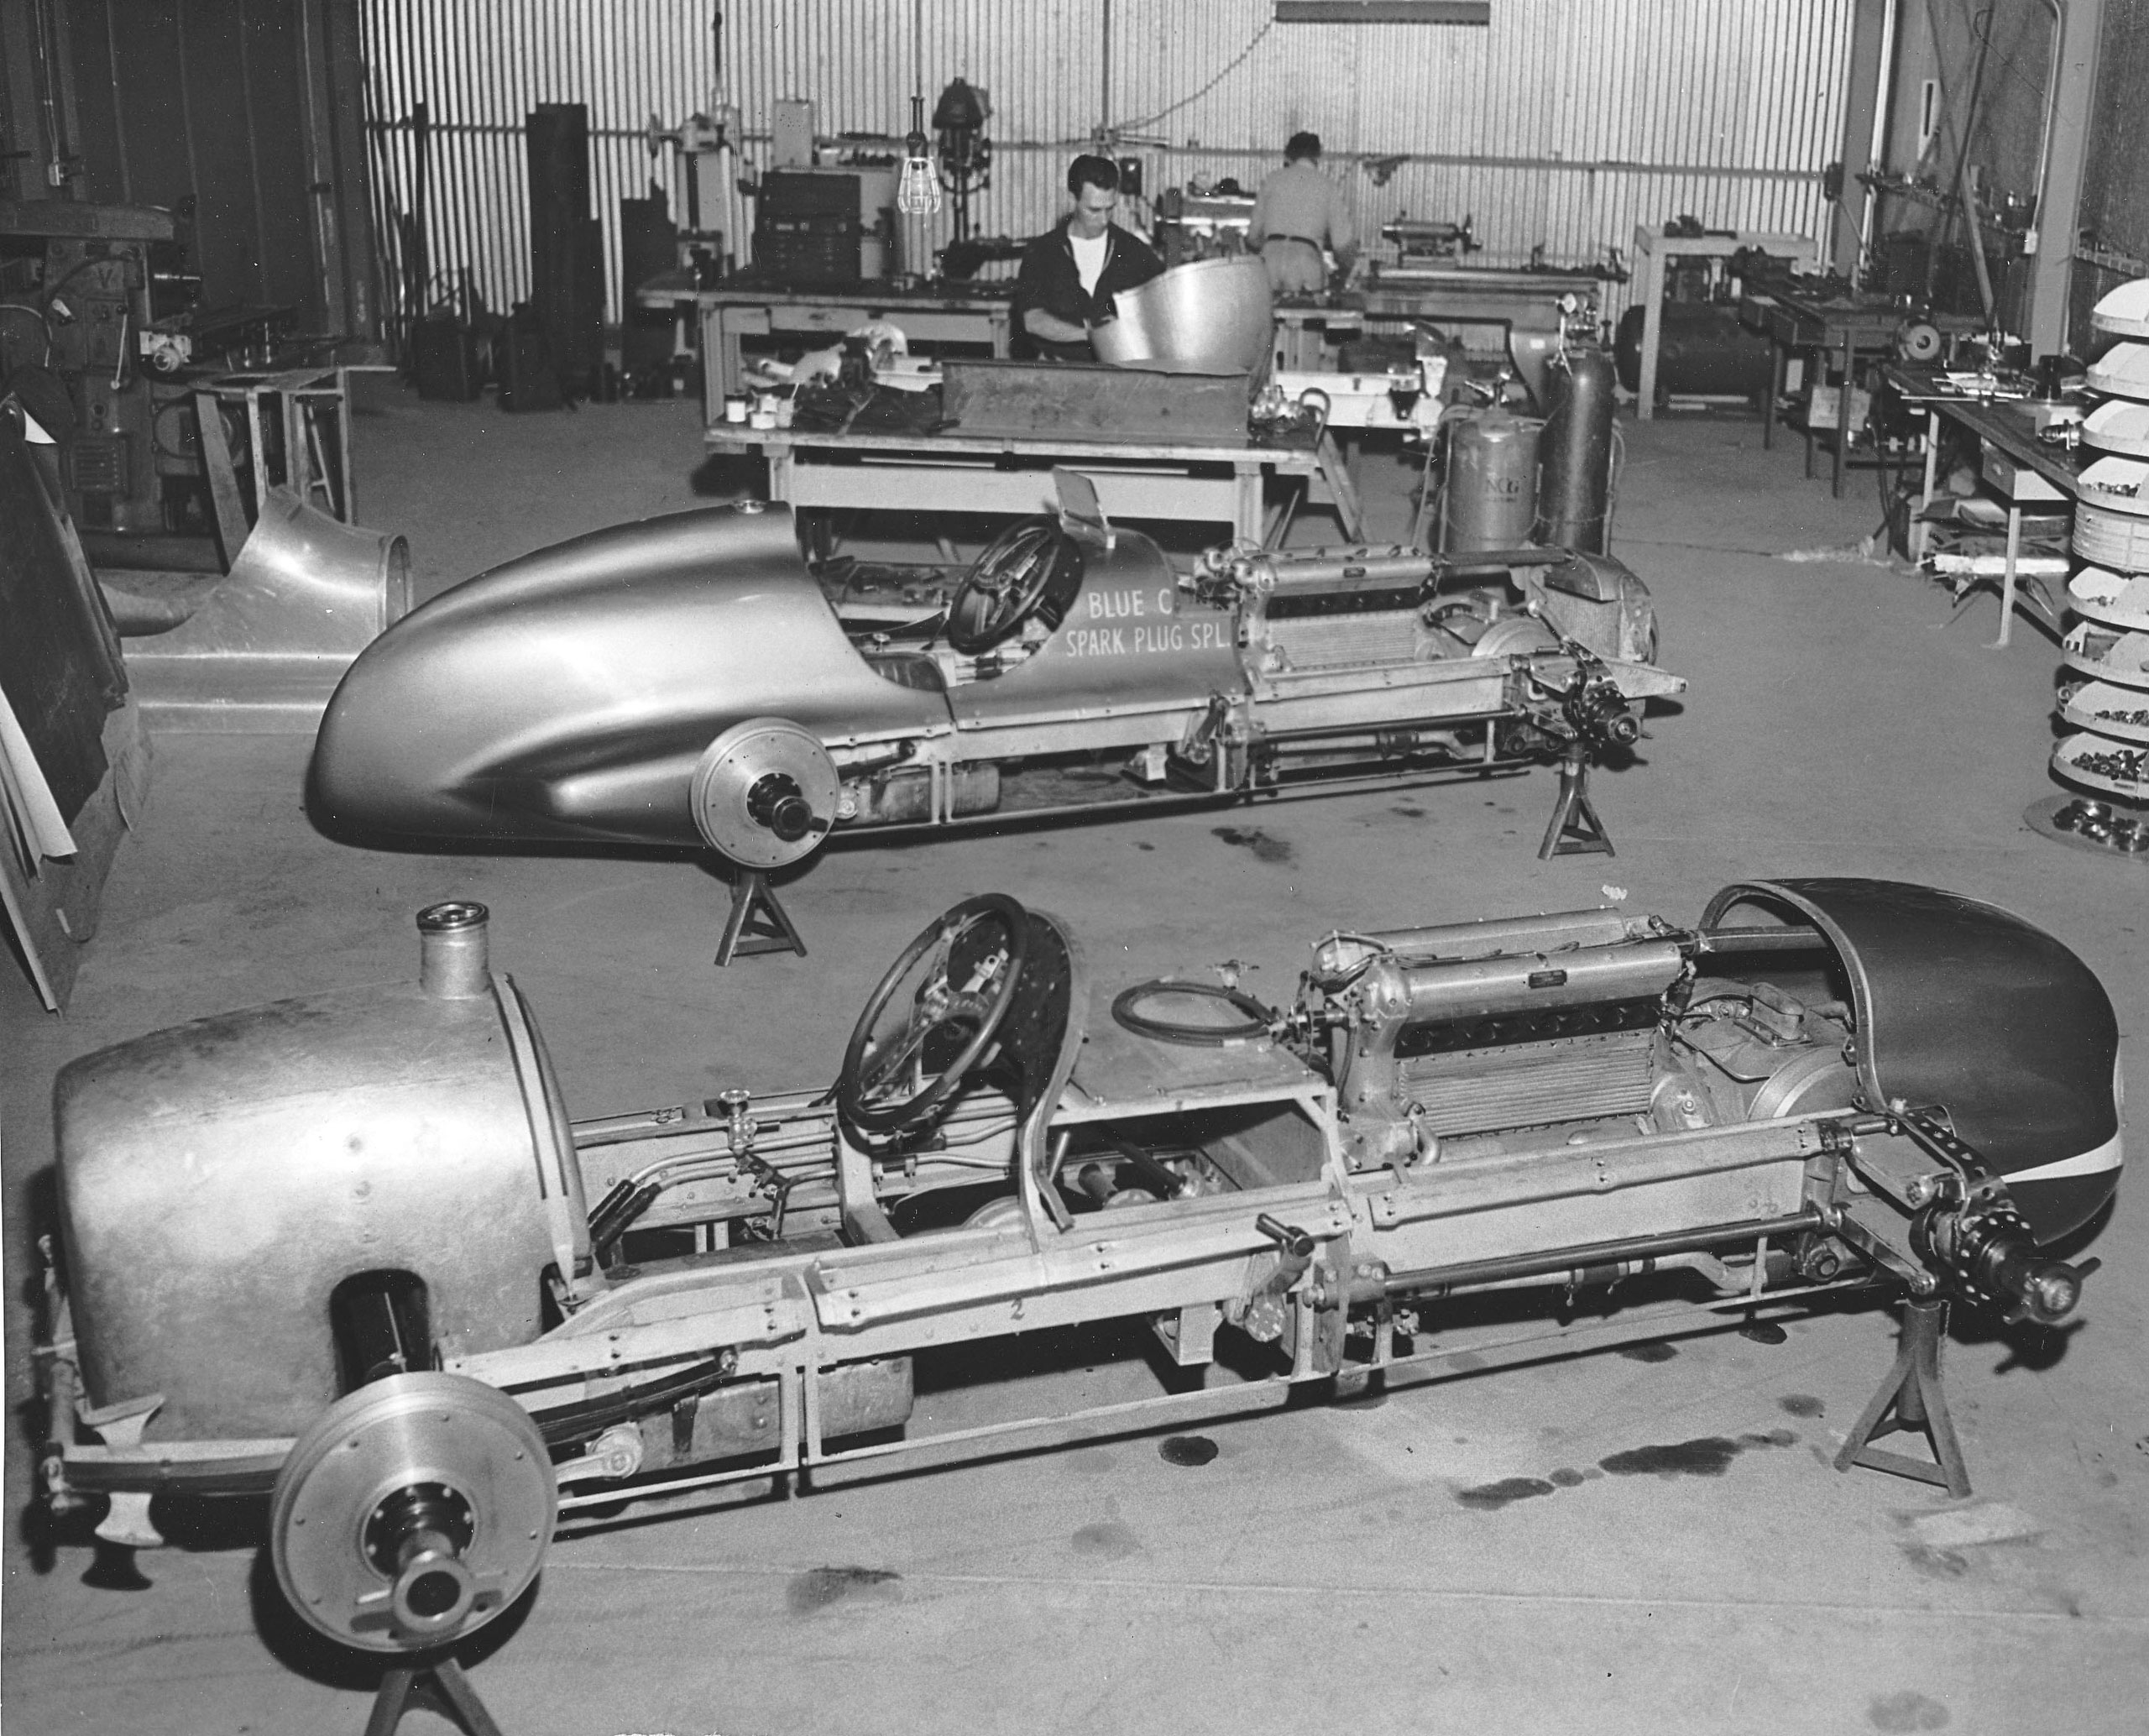 1947: The two Blue Crown Spark Plug Specials owned by former driver Lou Moore are shown being prepared for the running of the Indianapolis 500 race at the Indianapolis Motor Speedway.  The Deidt chassis, Offenhauser-powered machines were piloted to a one-two finish in the Indy 500 by Mauri Rose and Bill Holland.